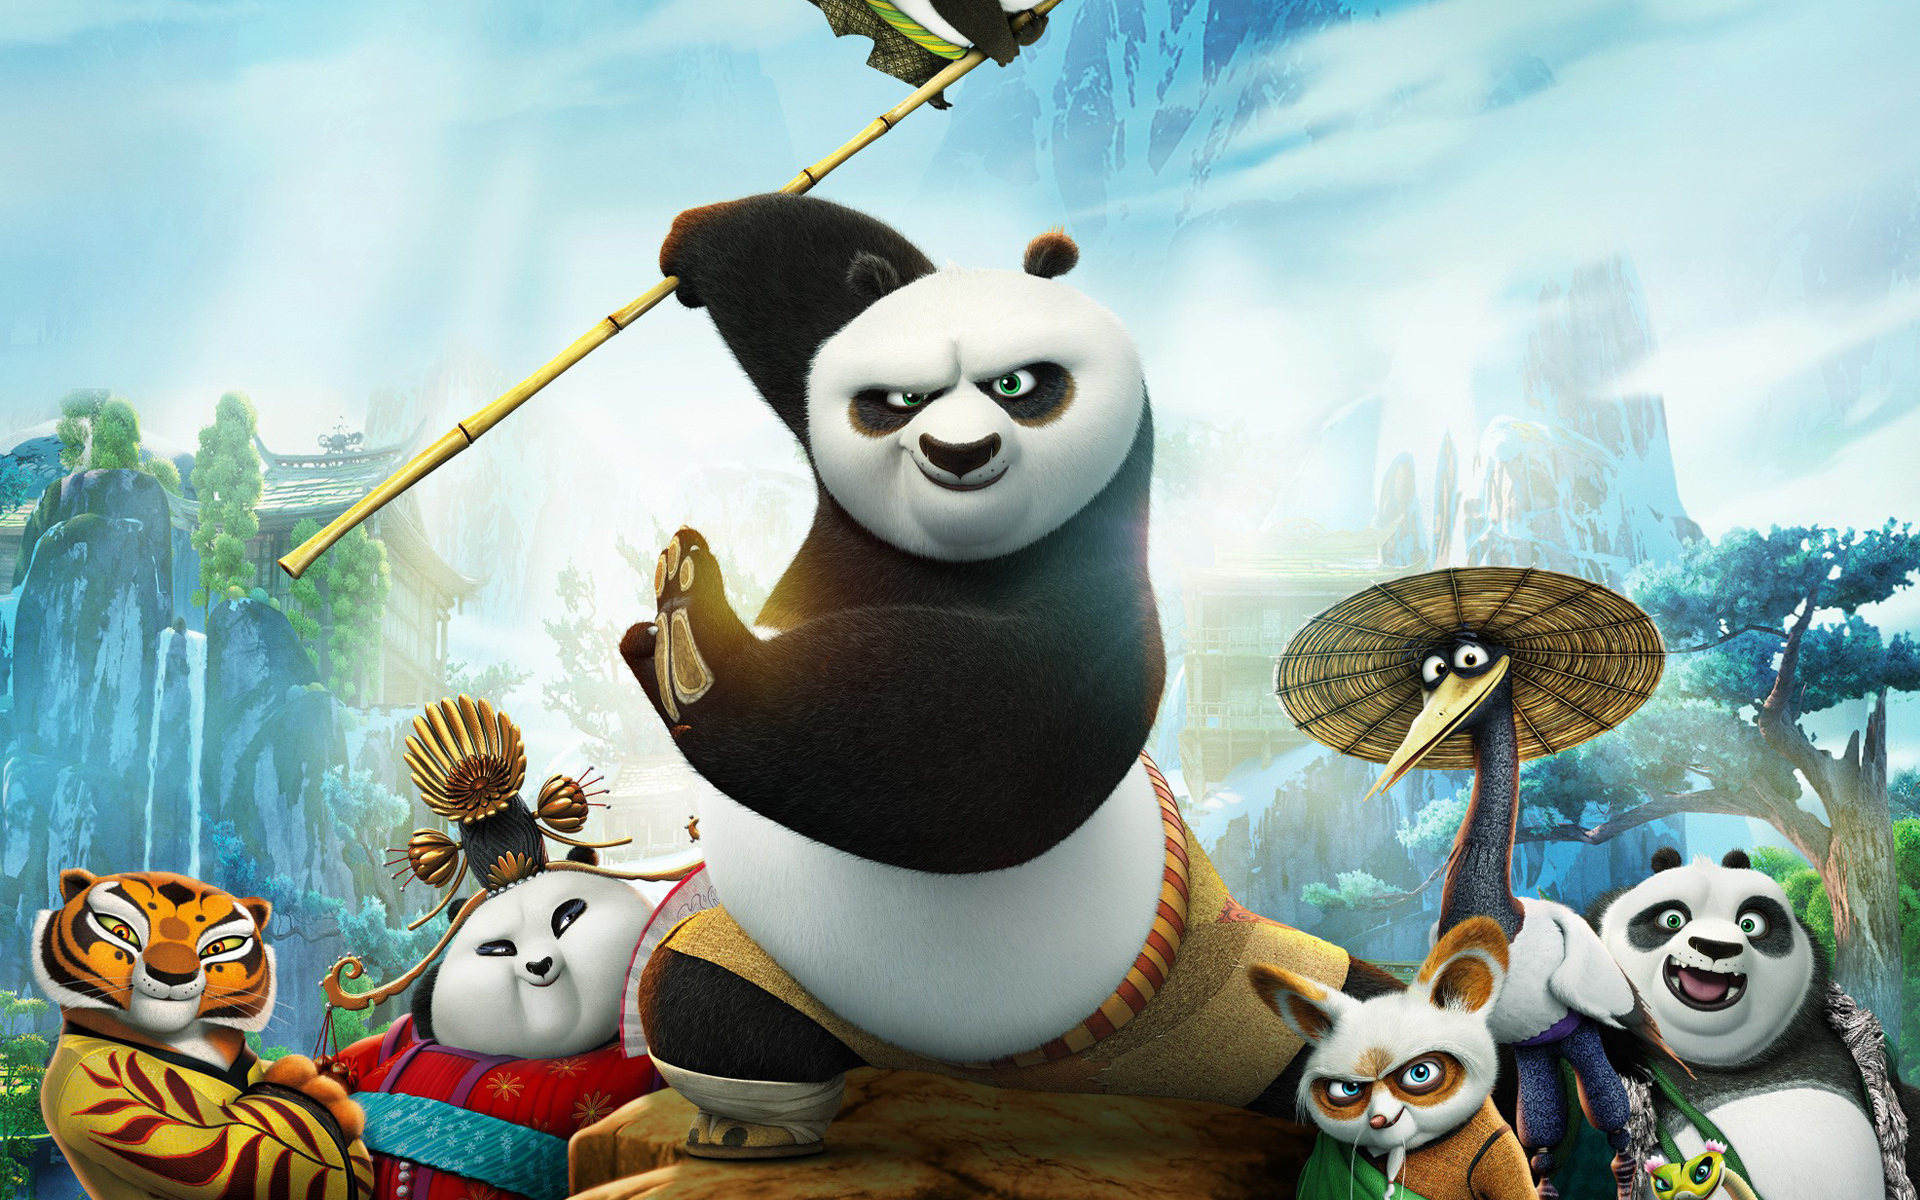 kung-fu-panda-hd-wallpapers-movie | wallpaper.wiki